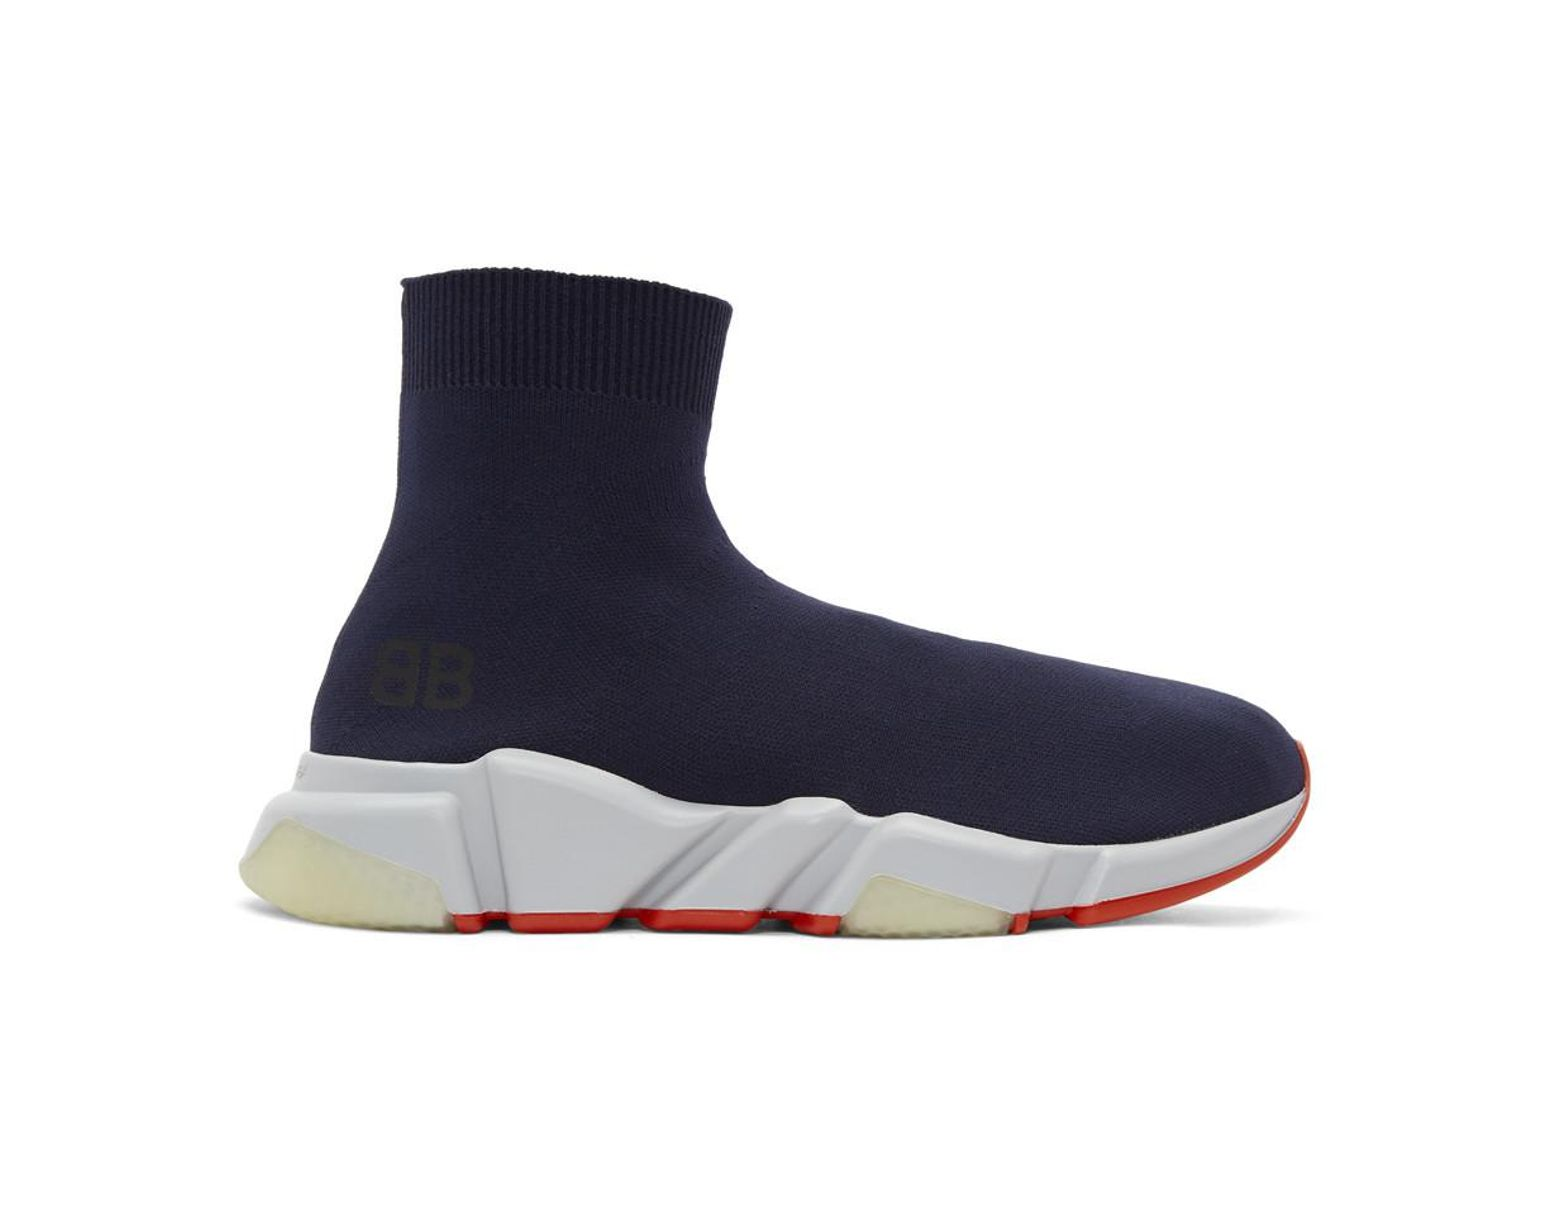 c87267e92 Balenciaga Navy Speed Runners High-top Sneakers in Blue for Men - Save 47%  - Lyst